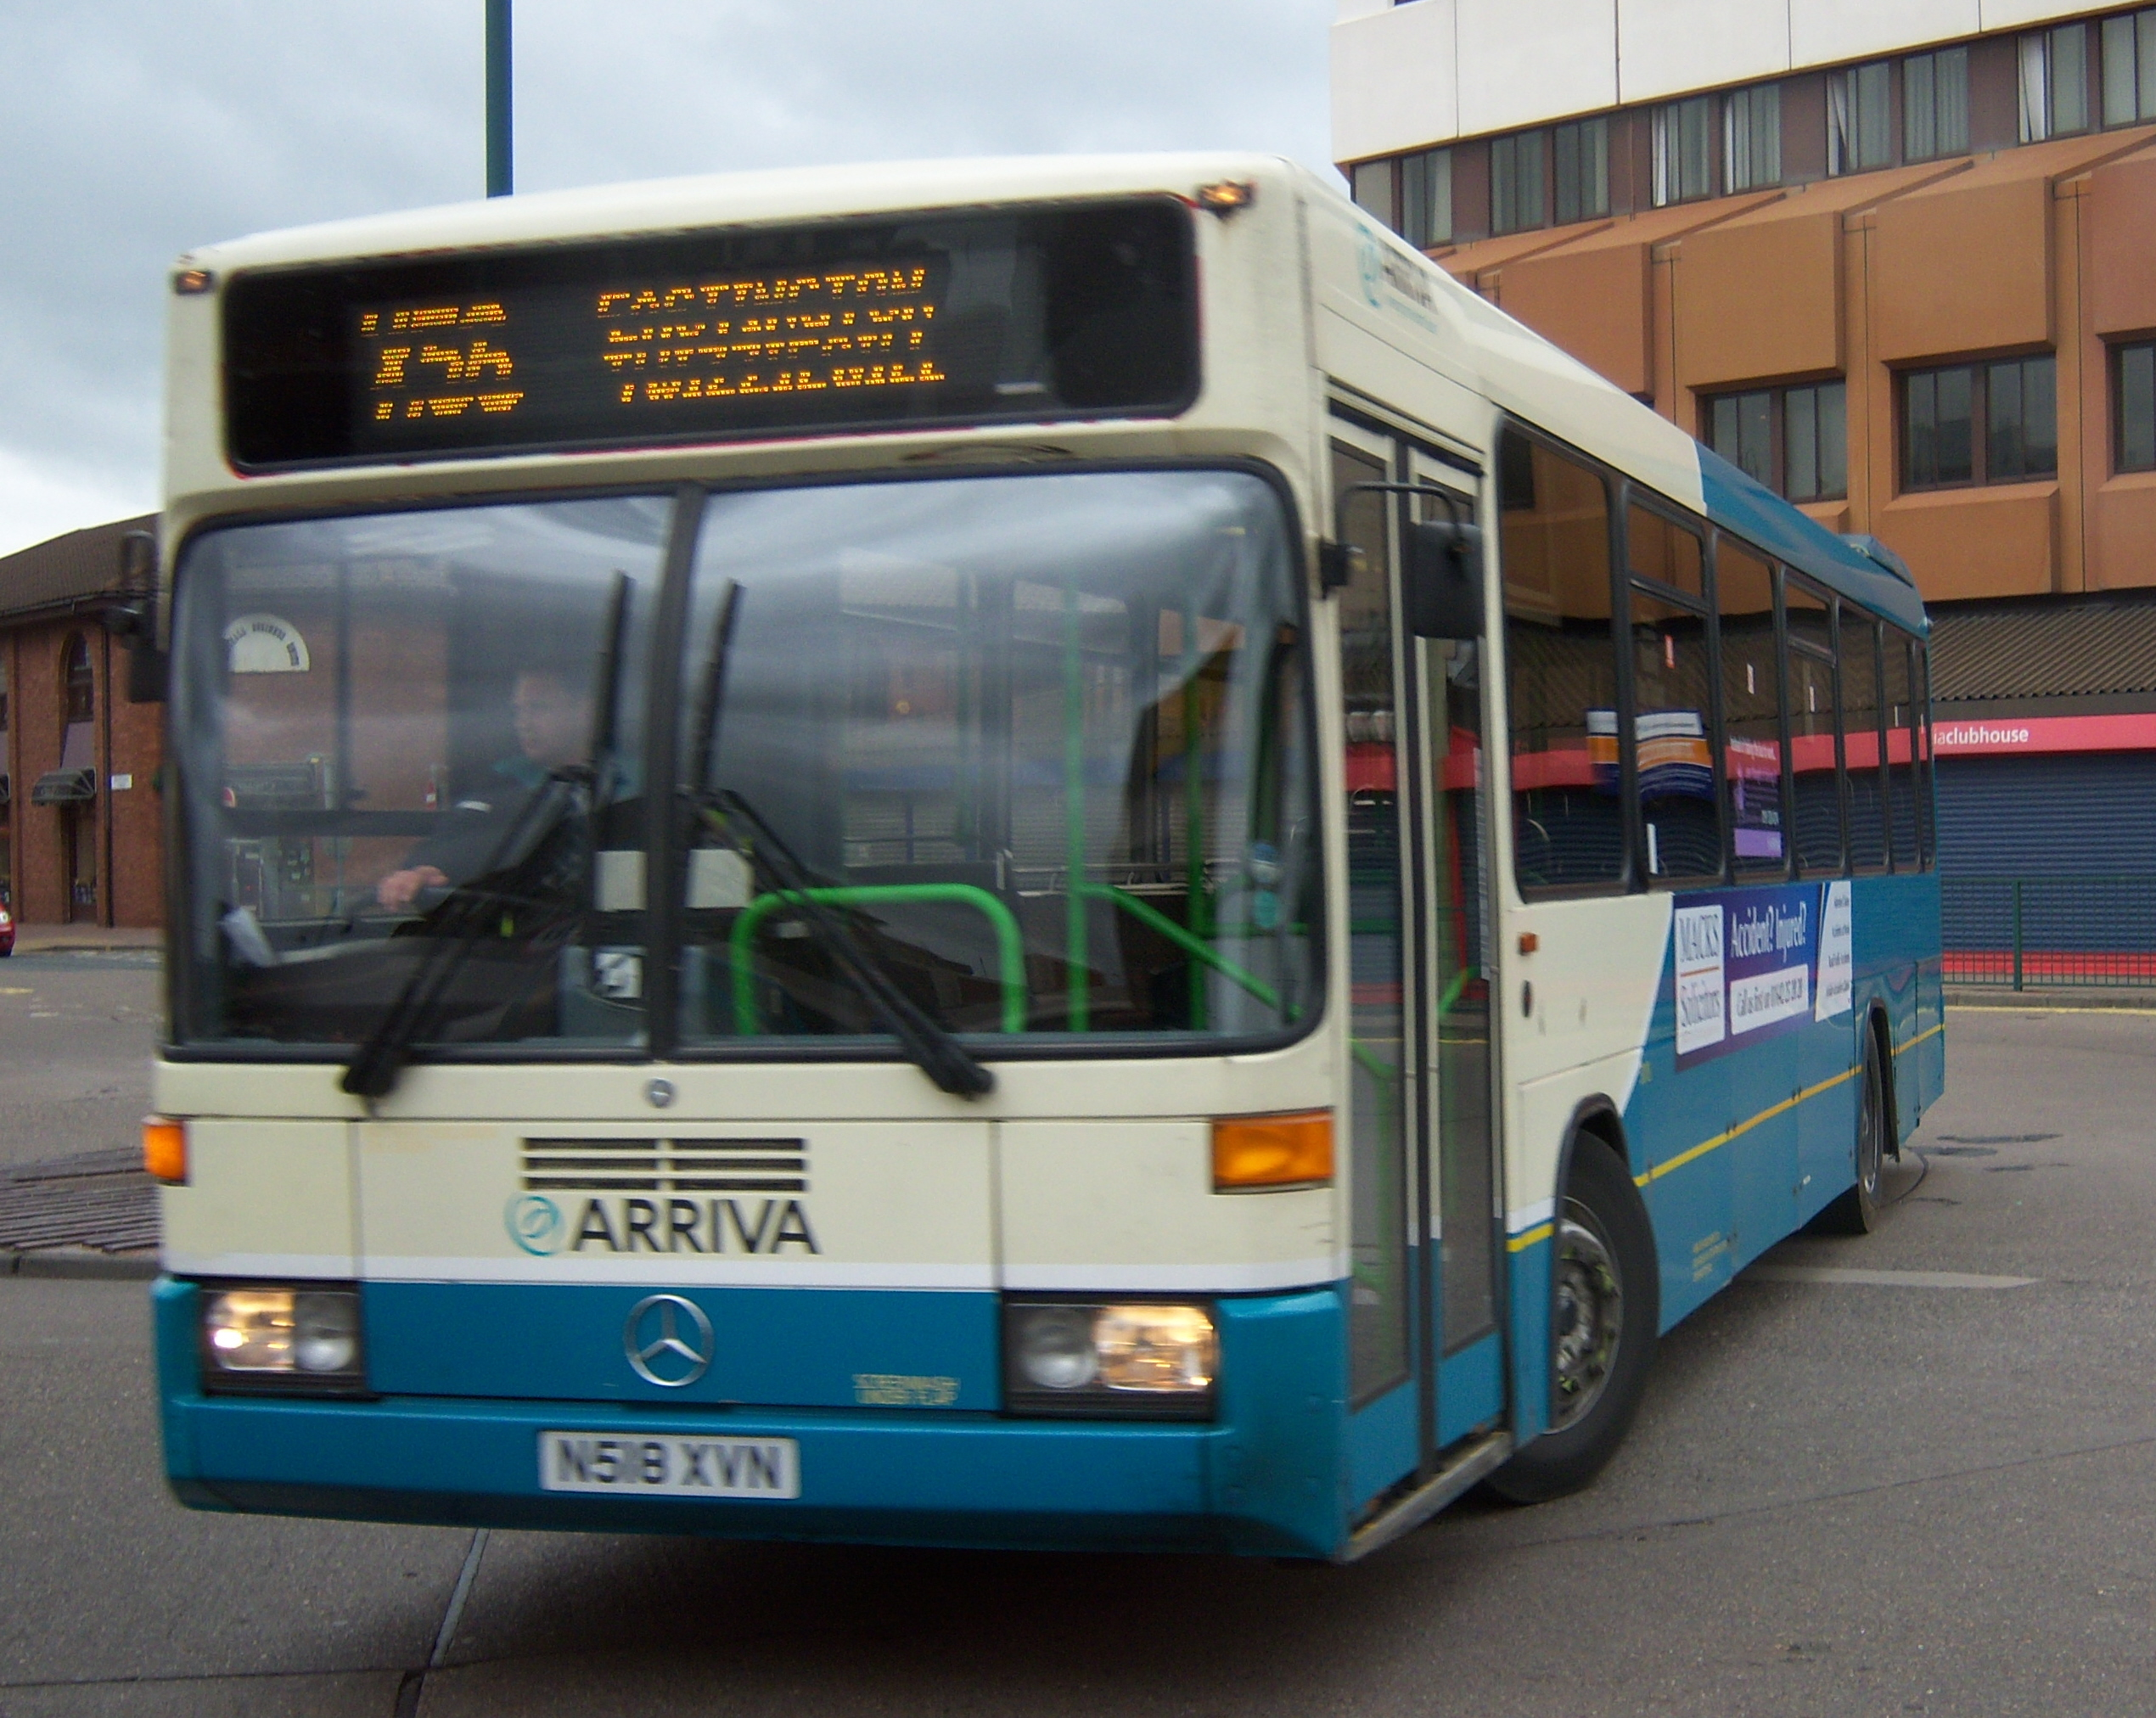 File:Arriva bus Mercedes Benz O405 Optare N518 XVN in